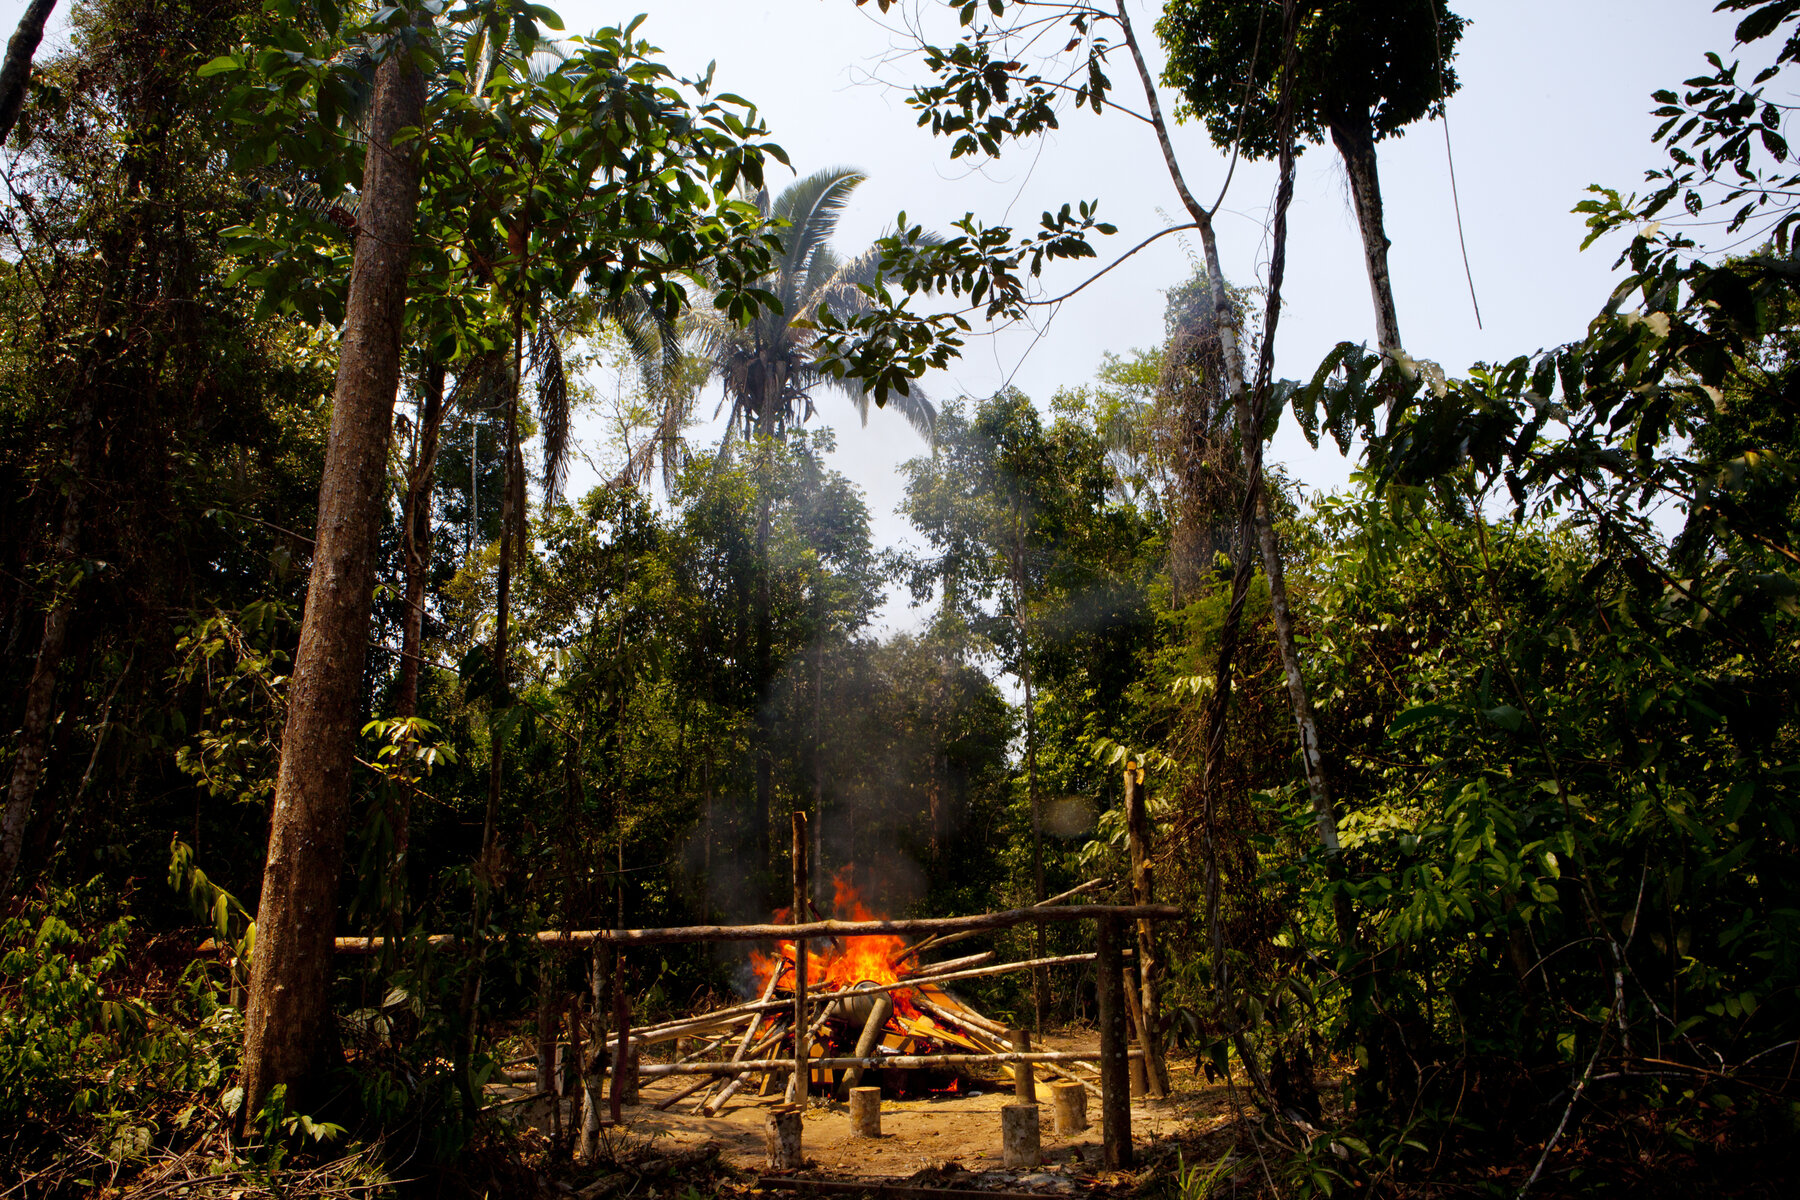 One of three illegal logging camps dismantled and set on fire by Elizeu Berçacola and his crew.